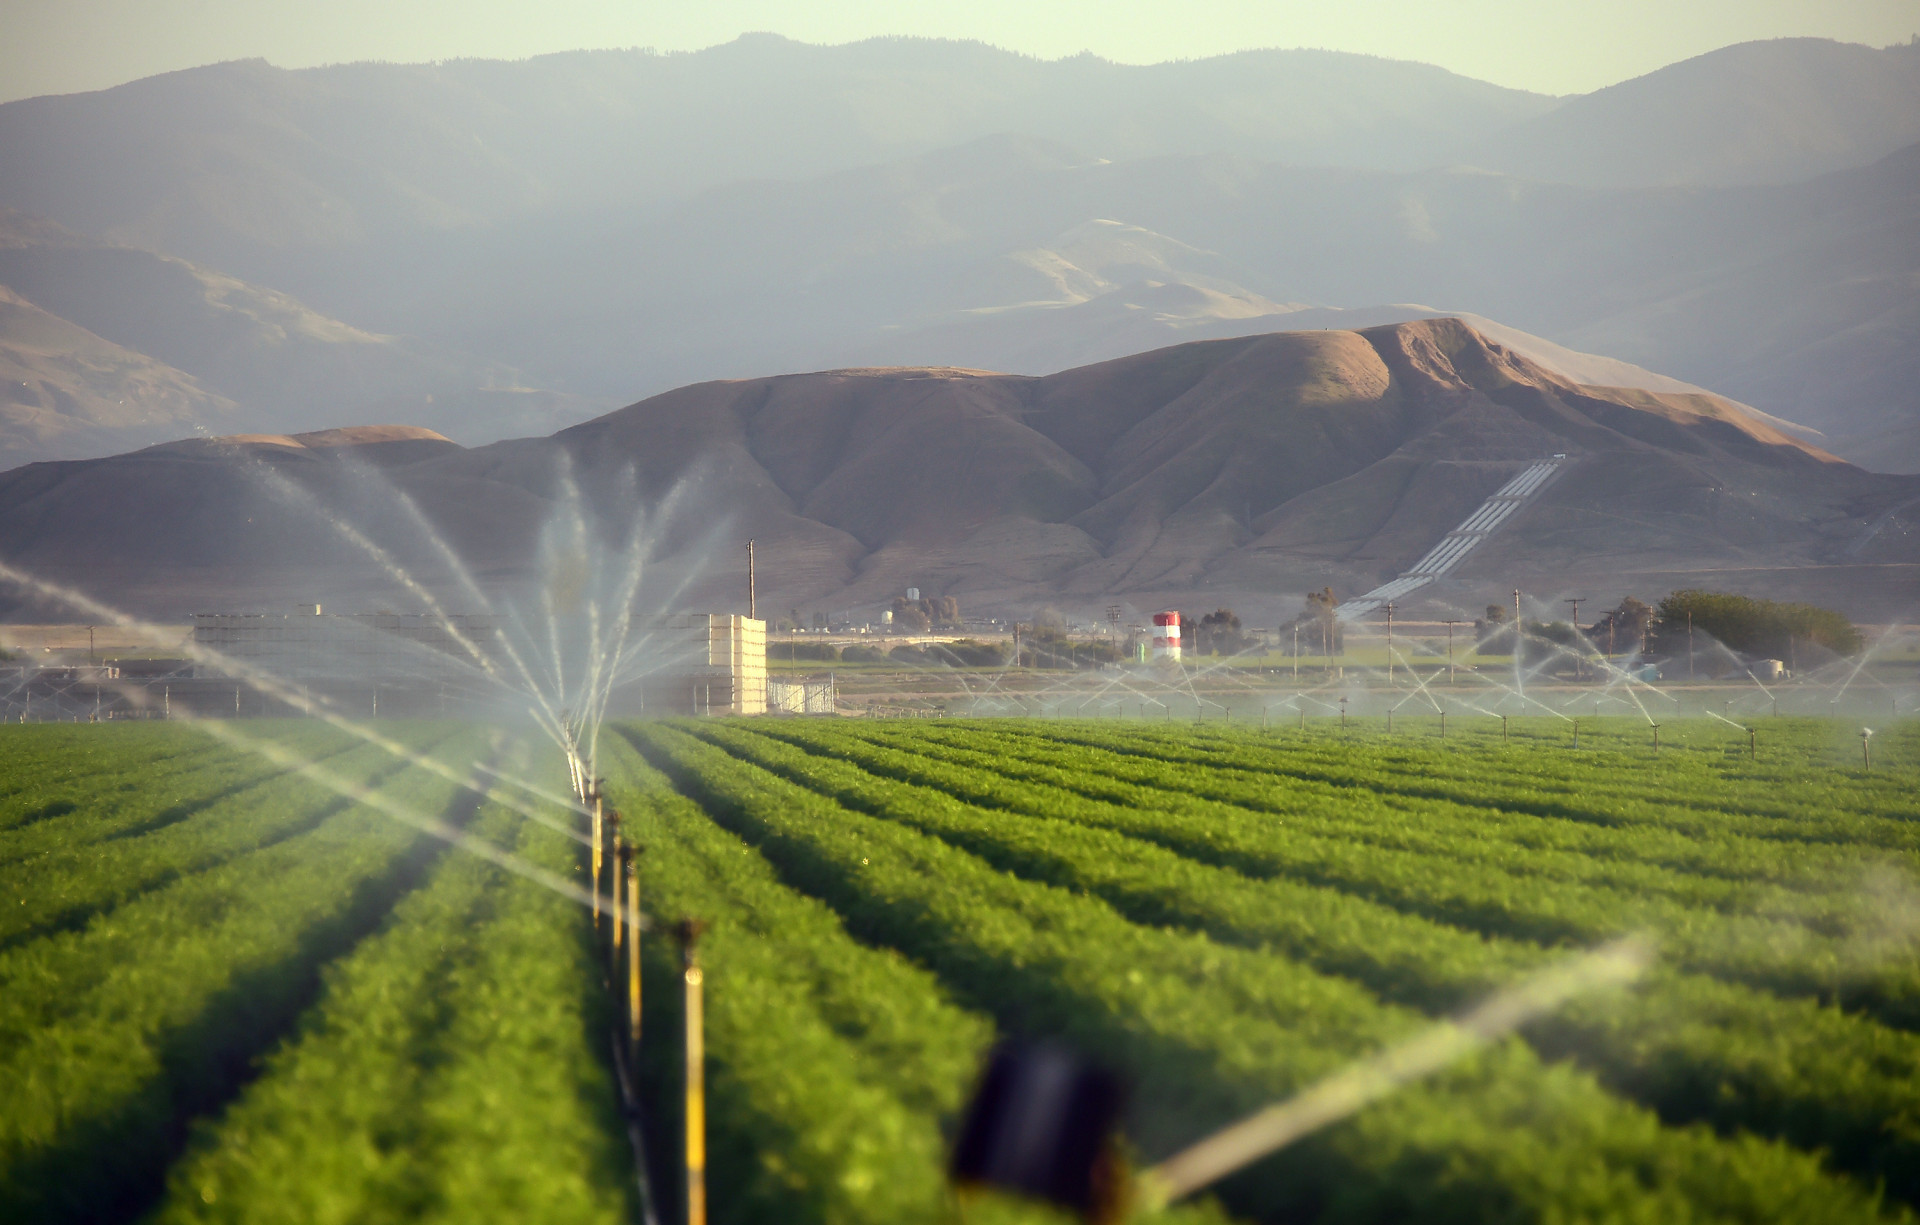 Fields of carrots are watered March 29, 2015, in Kern County, Calif. Subsidized water flowing in federal and state canals down from the wet north to the arid south helped turn the dry, flat plain of the San Joaquin Valley into one of the world's most important food-growing regions.